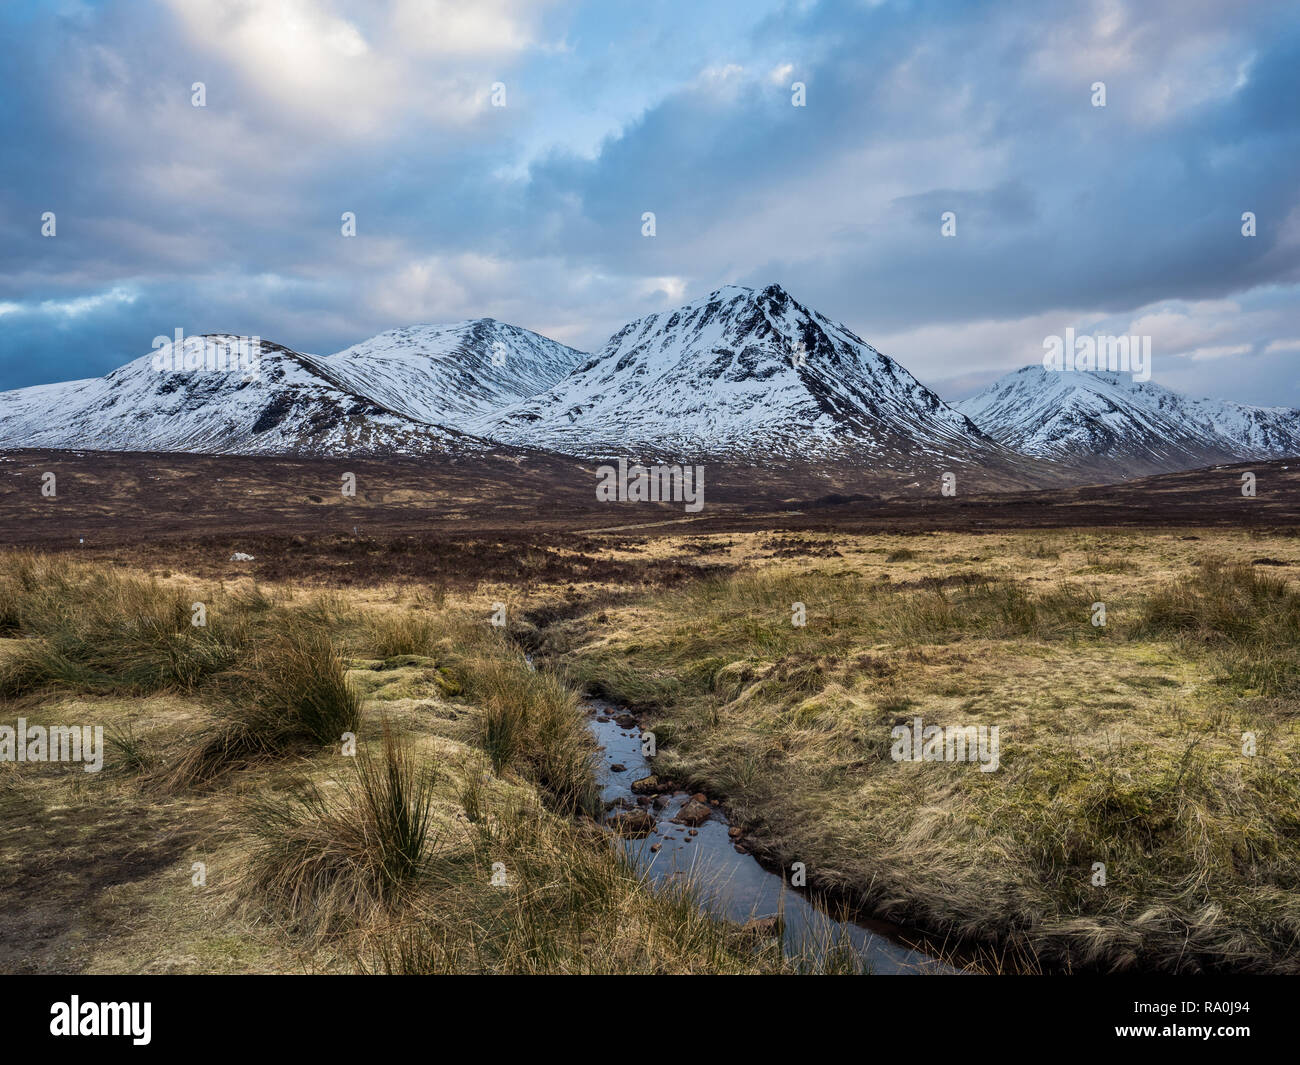 A dramatic sky in the Scottish Highlands, Winter 2018 - Stock Image